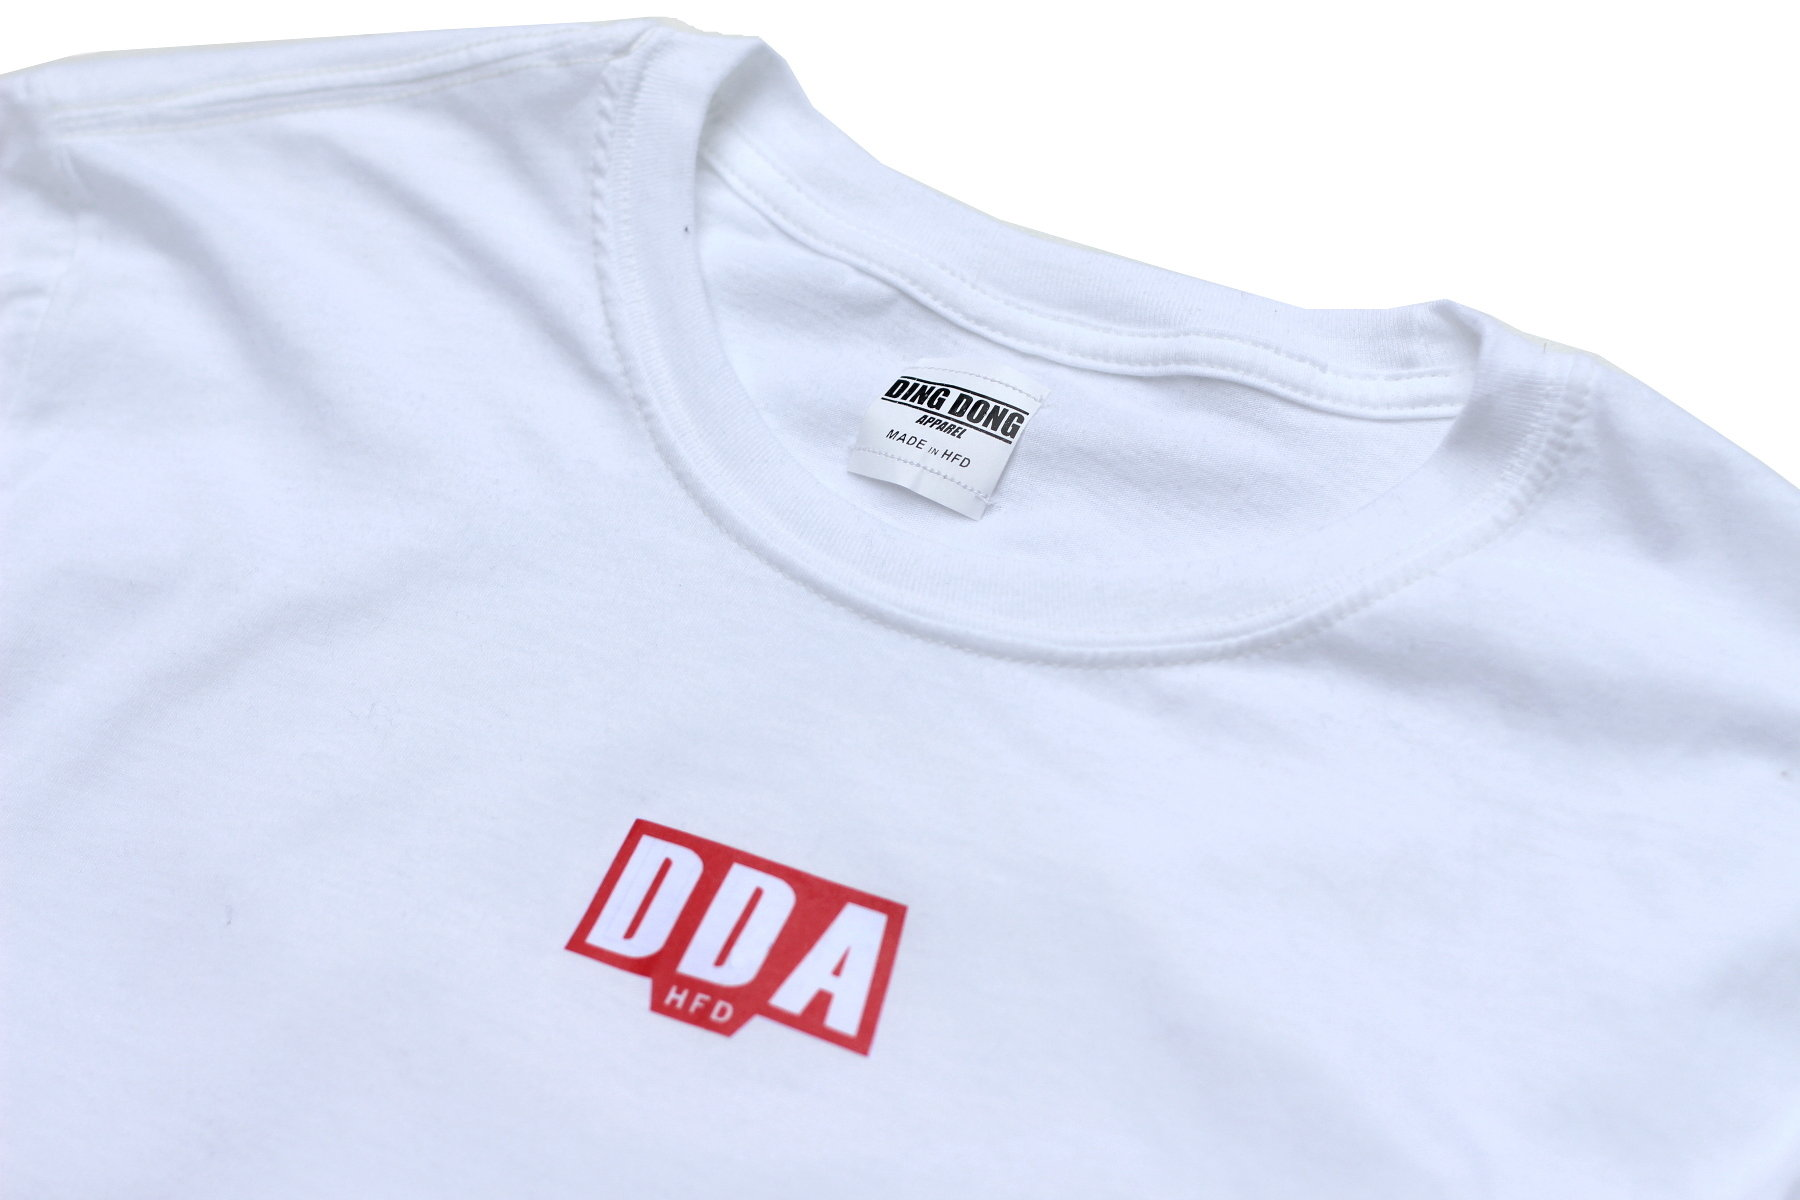 DDA Hfd LS Tee - White/Red